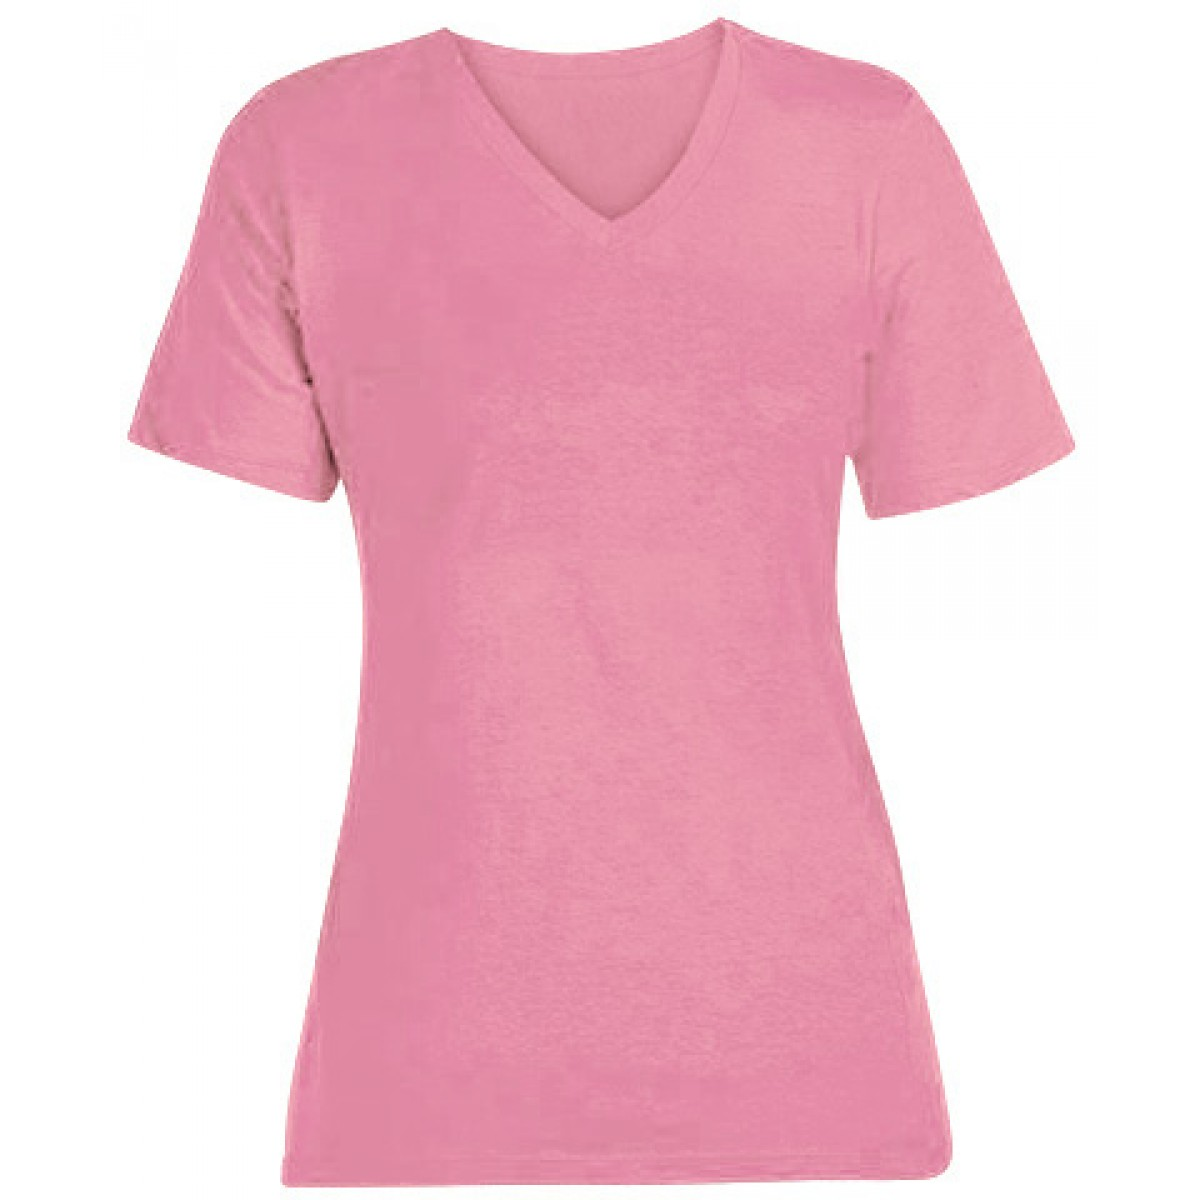 Econscious Ladies Short-Sleeve V-Neck-Pink-L